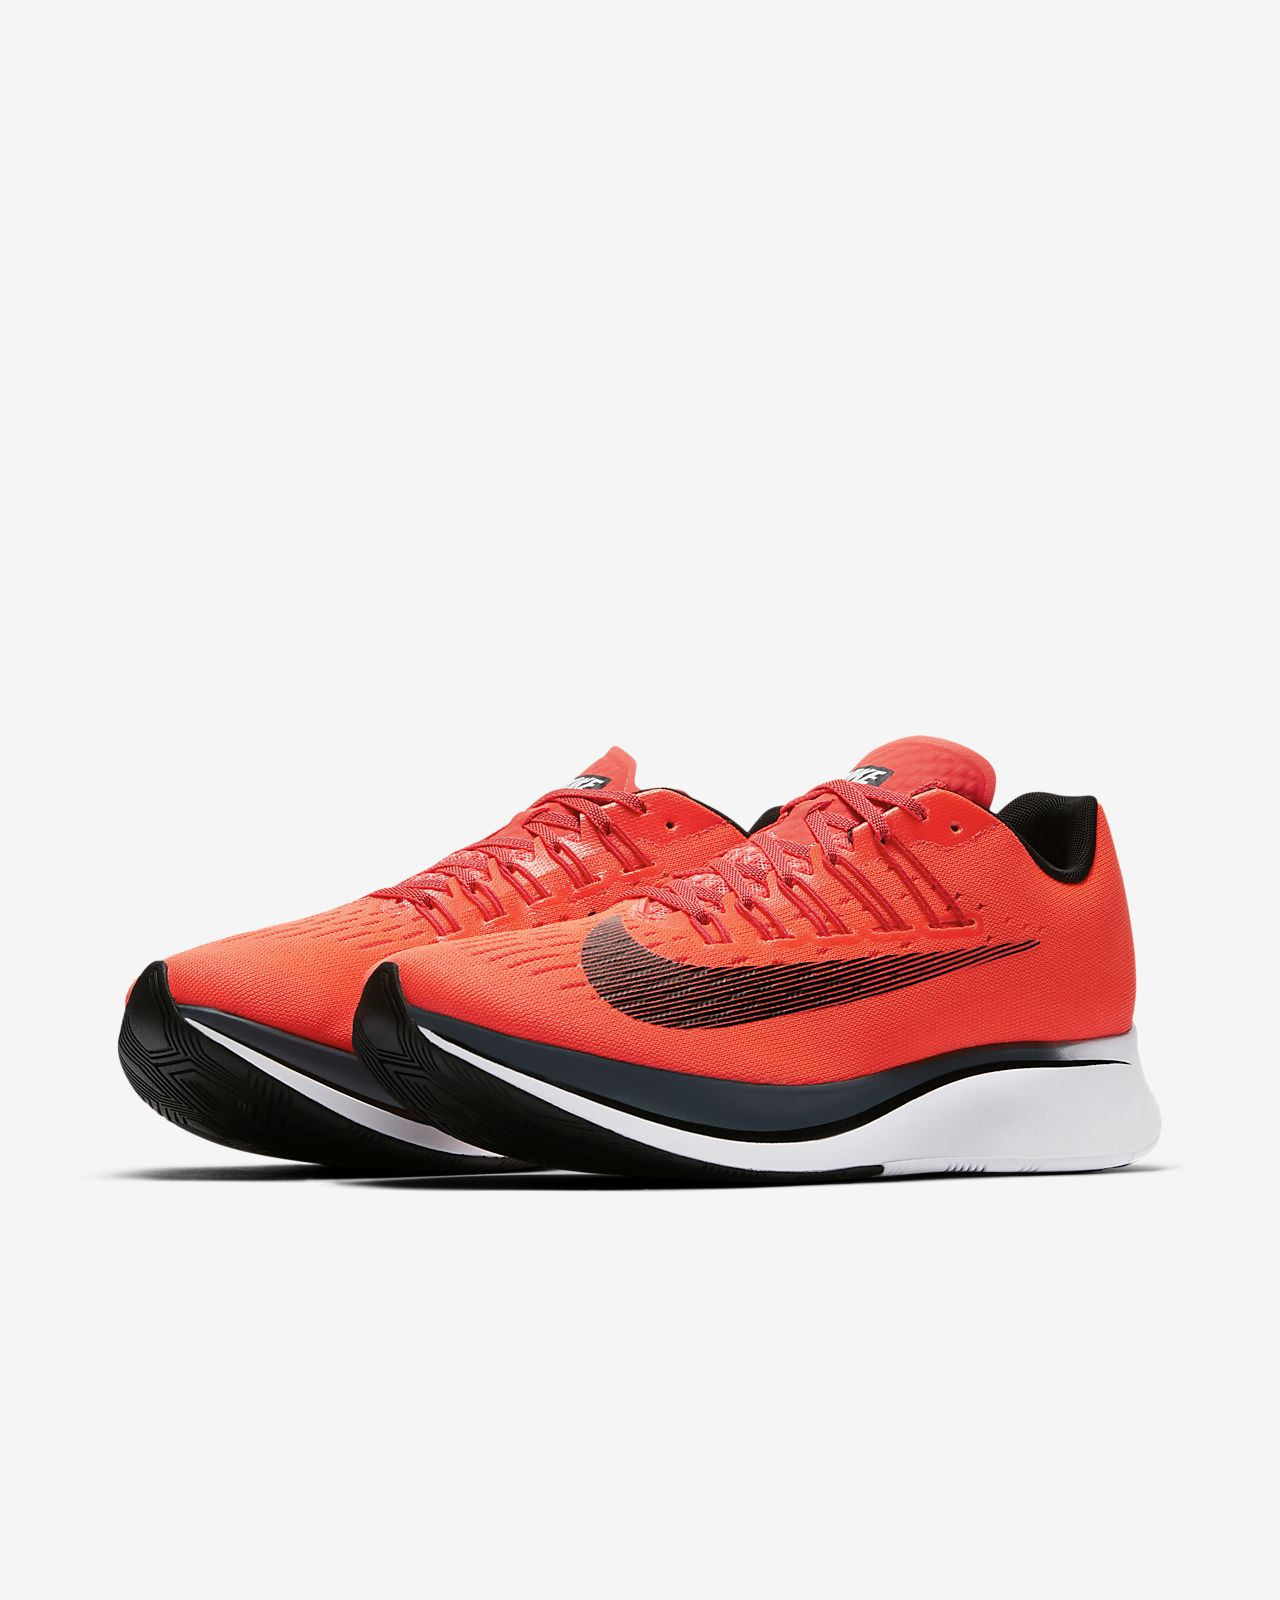 c6ad0a77b7b6a Nike Zoom Fly Men s Running Shoe. Nike.com CA